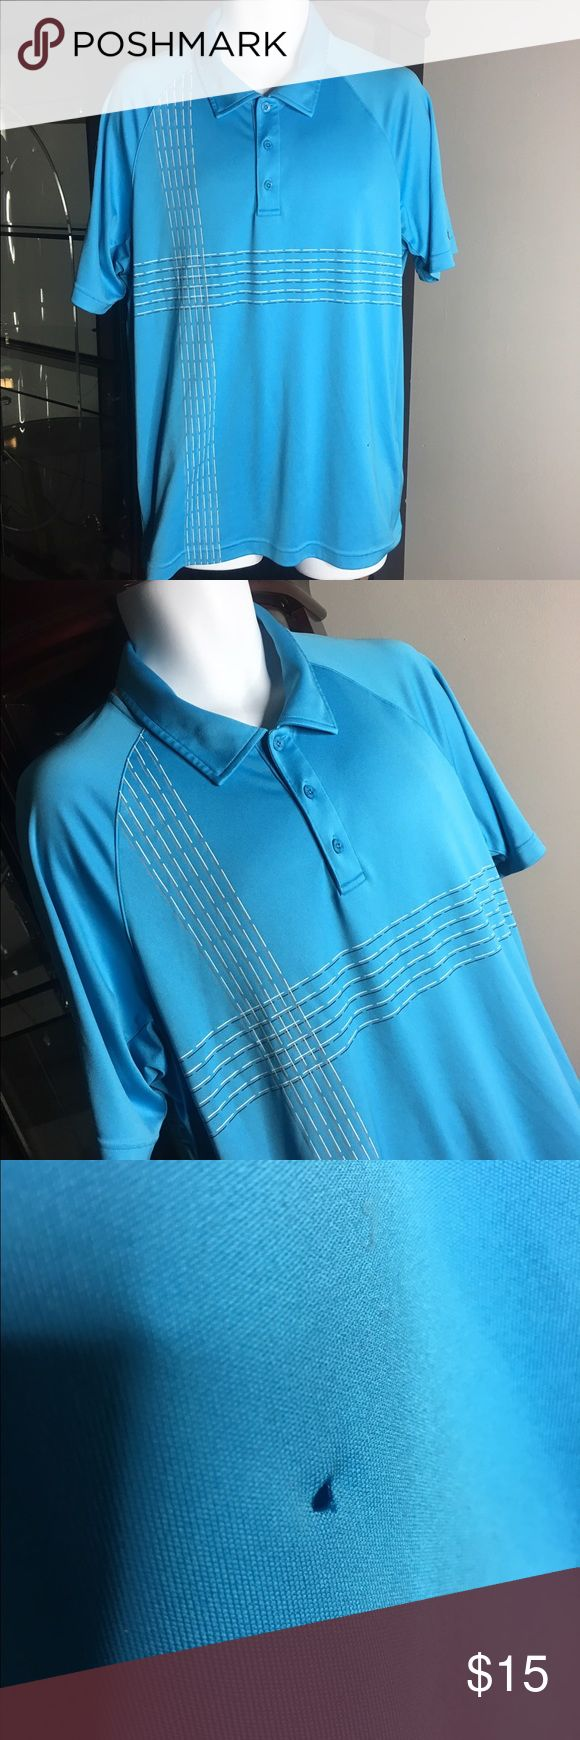 Men's blue under armour golf shirt You are purchasing a men's Light Blue under armour golf shirt , has a small hole in front SEE pics, no other flaws other than that it is a XL fits true to size      Our #1 Goal is customer satisfaction. We love to treat our customers with the best service. Feel free to ask any questions if you have any   GO CHECK OUT OUR OTHER NAME BRAND ITEMS   FEEDBACK: we strive to earn positive 5 star feedback for all items. Under Armour Shirts Polos